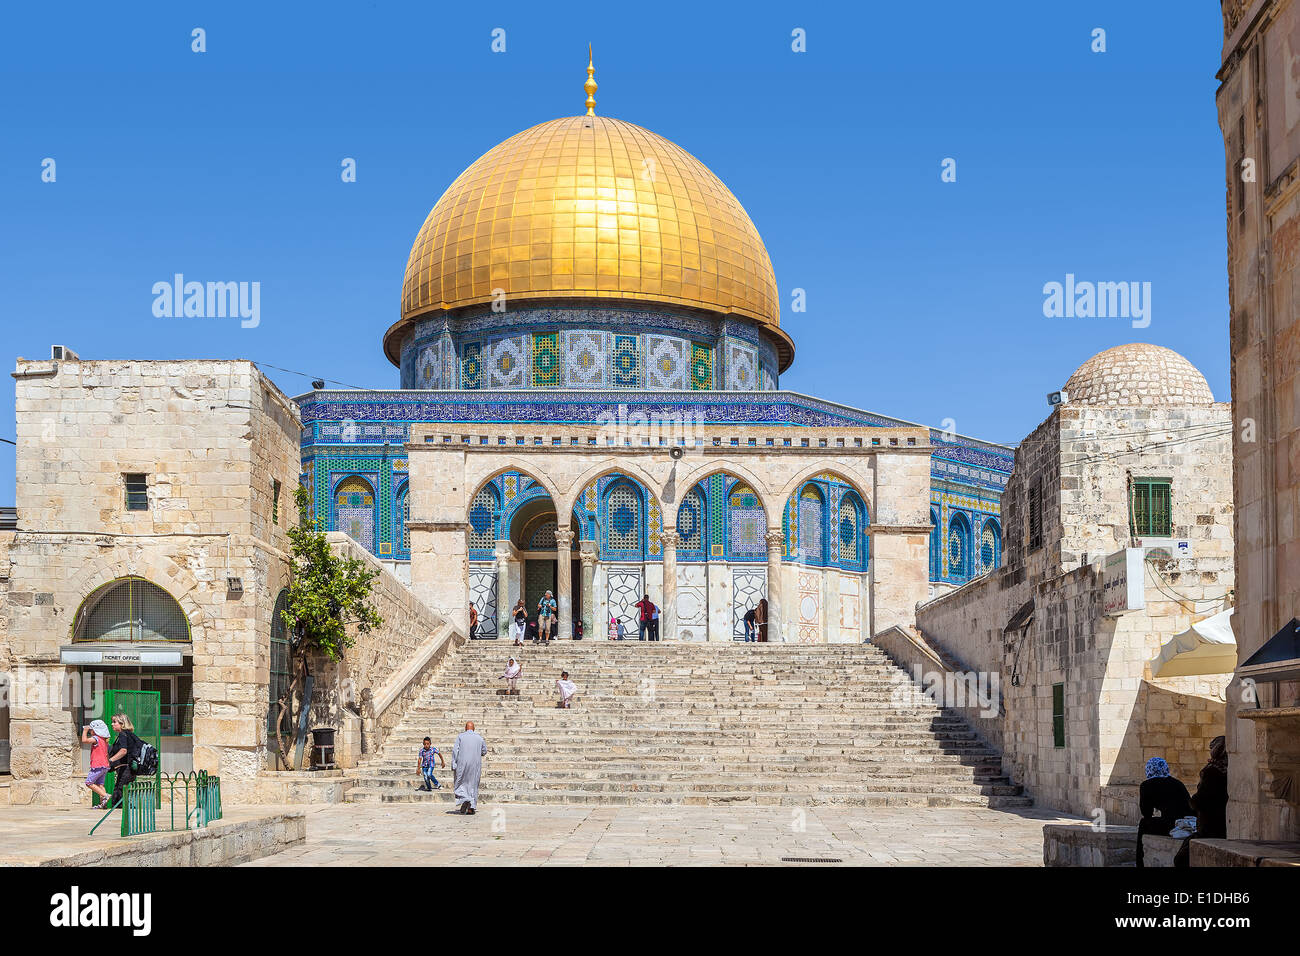 Dome of the Rock mosque in Jerusalem, Israel. - Stock Image